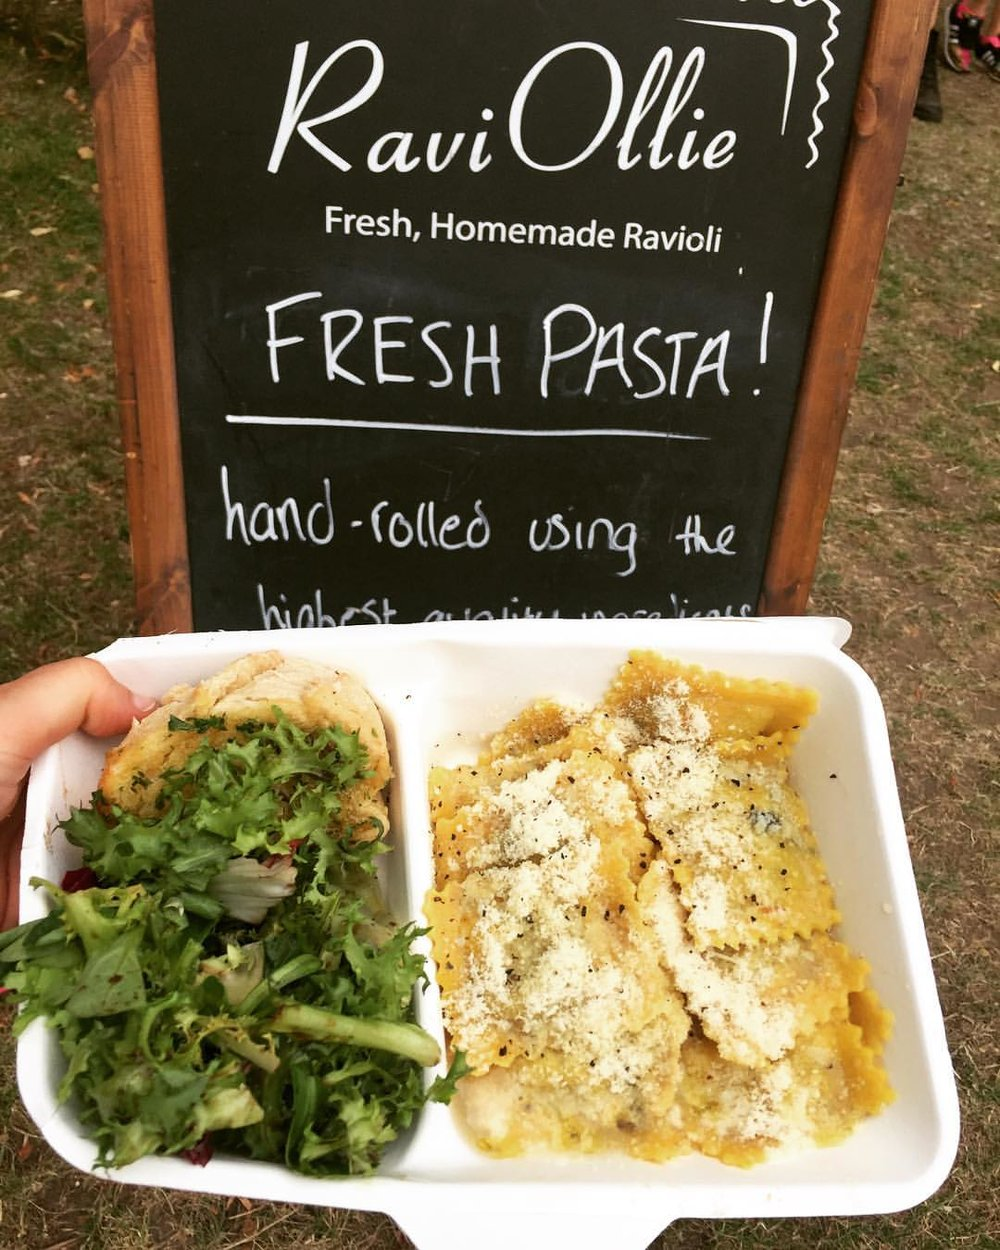 'So happy to find some fresh homemade food at Lovebox Festival' - East london girl